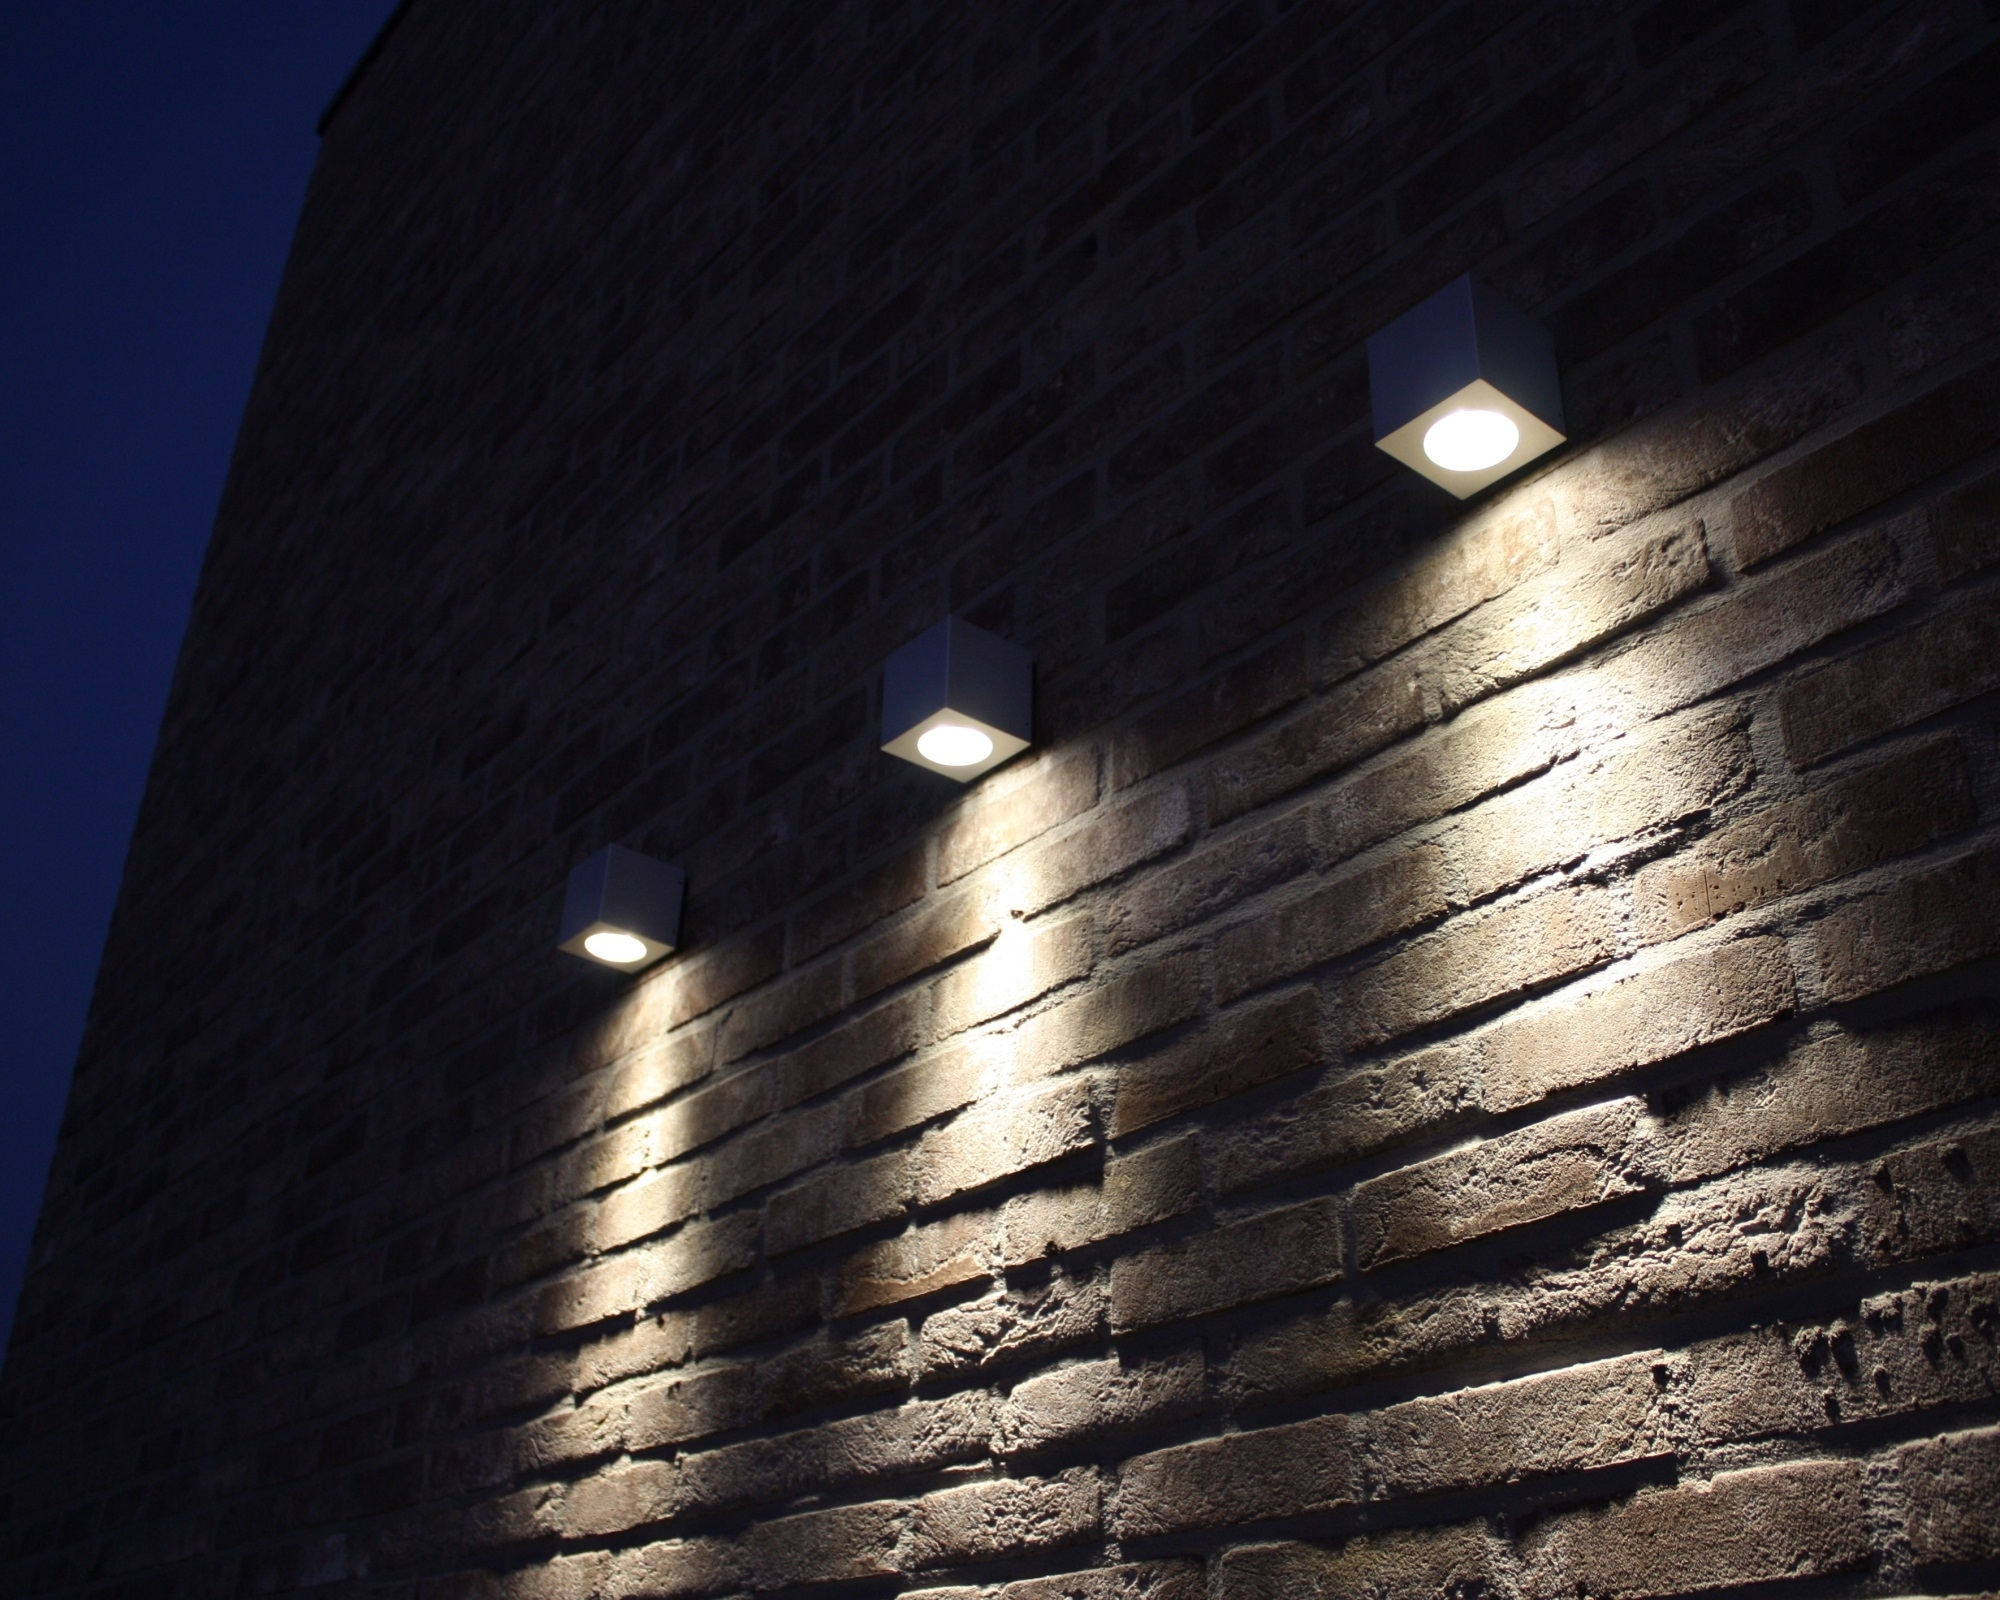 Outdoor Wall Mounted Led Lighting For Red Exposed Brick Wall Ideas Inside Outdoor Wall Led Lighting Fixtures (#12 of 15)